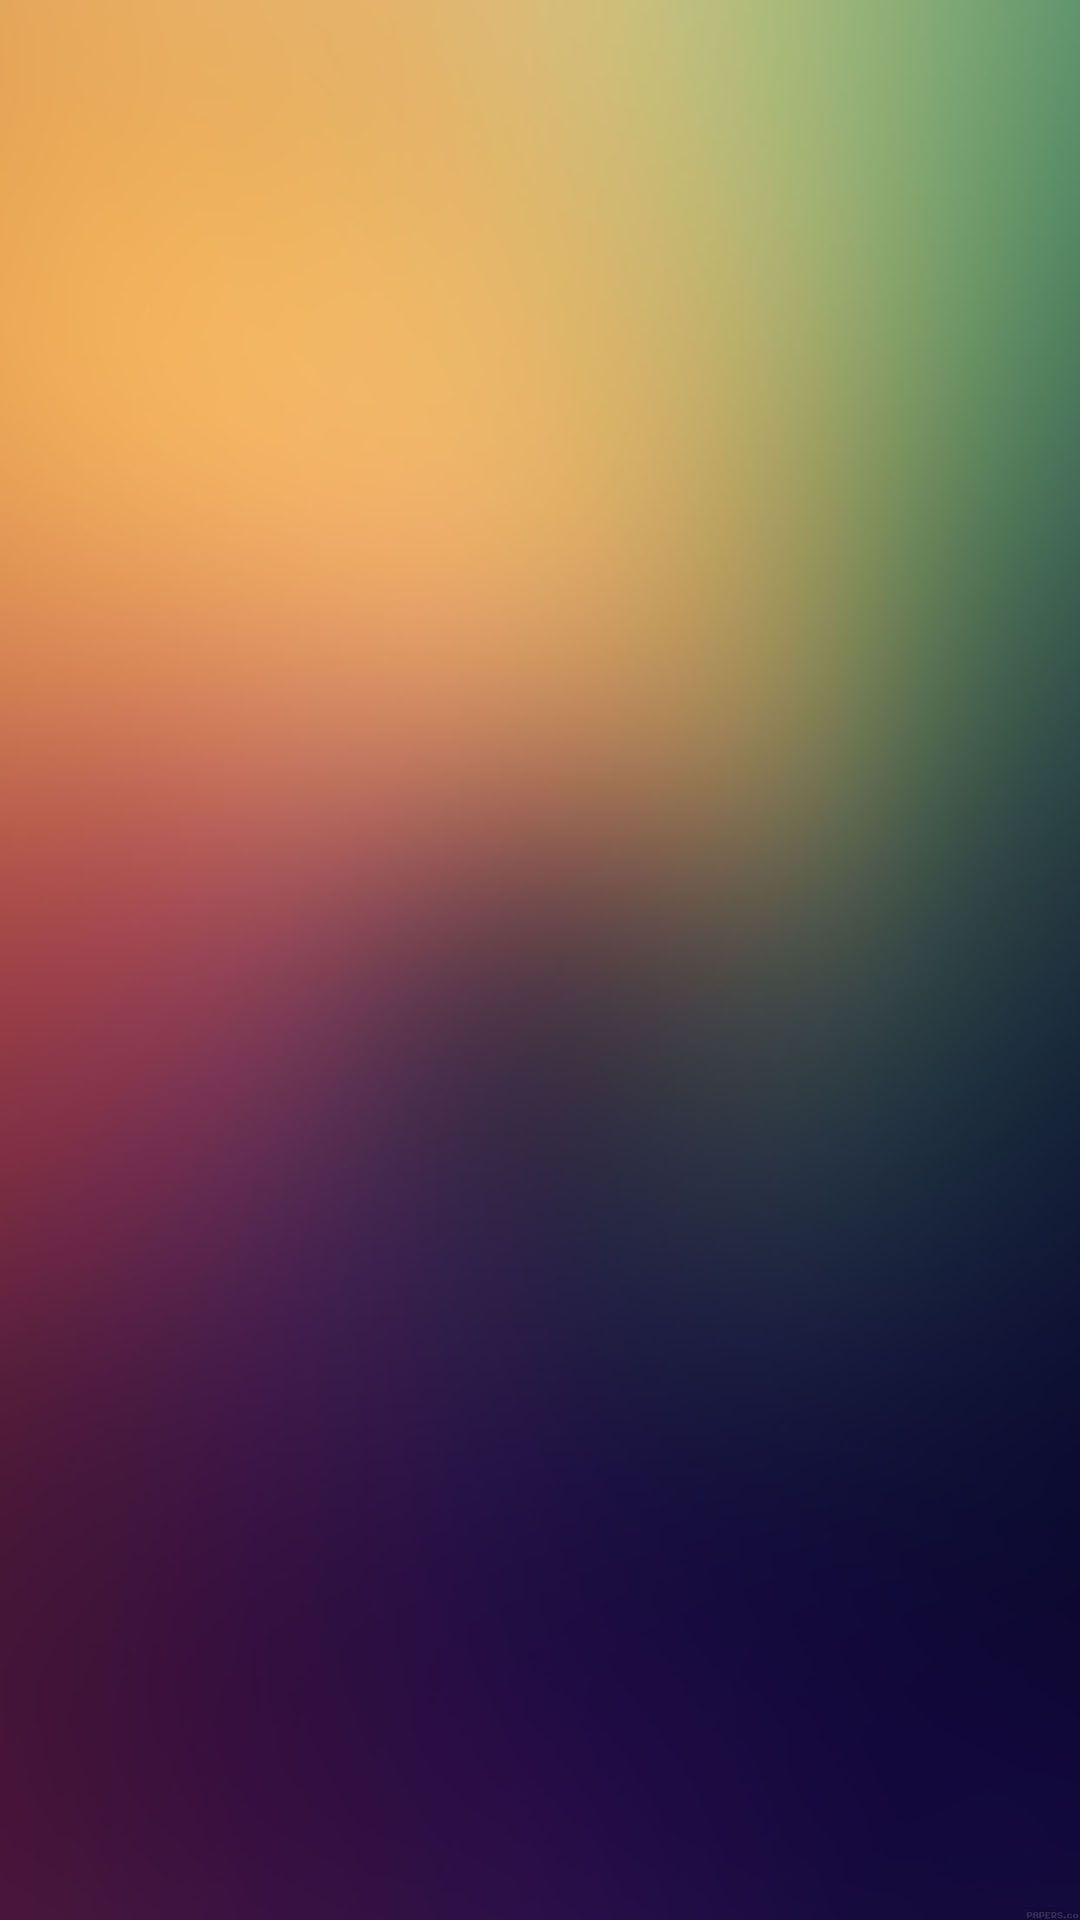 Color Blur Background Iphone 6 Wallpaper Color Blur Simple Iphone Wallpaper Blurred Background